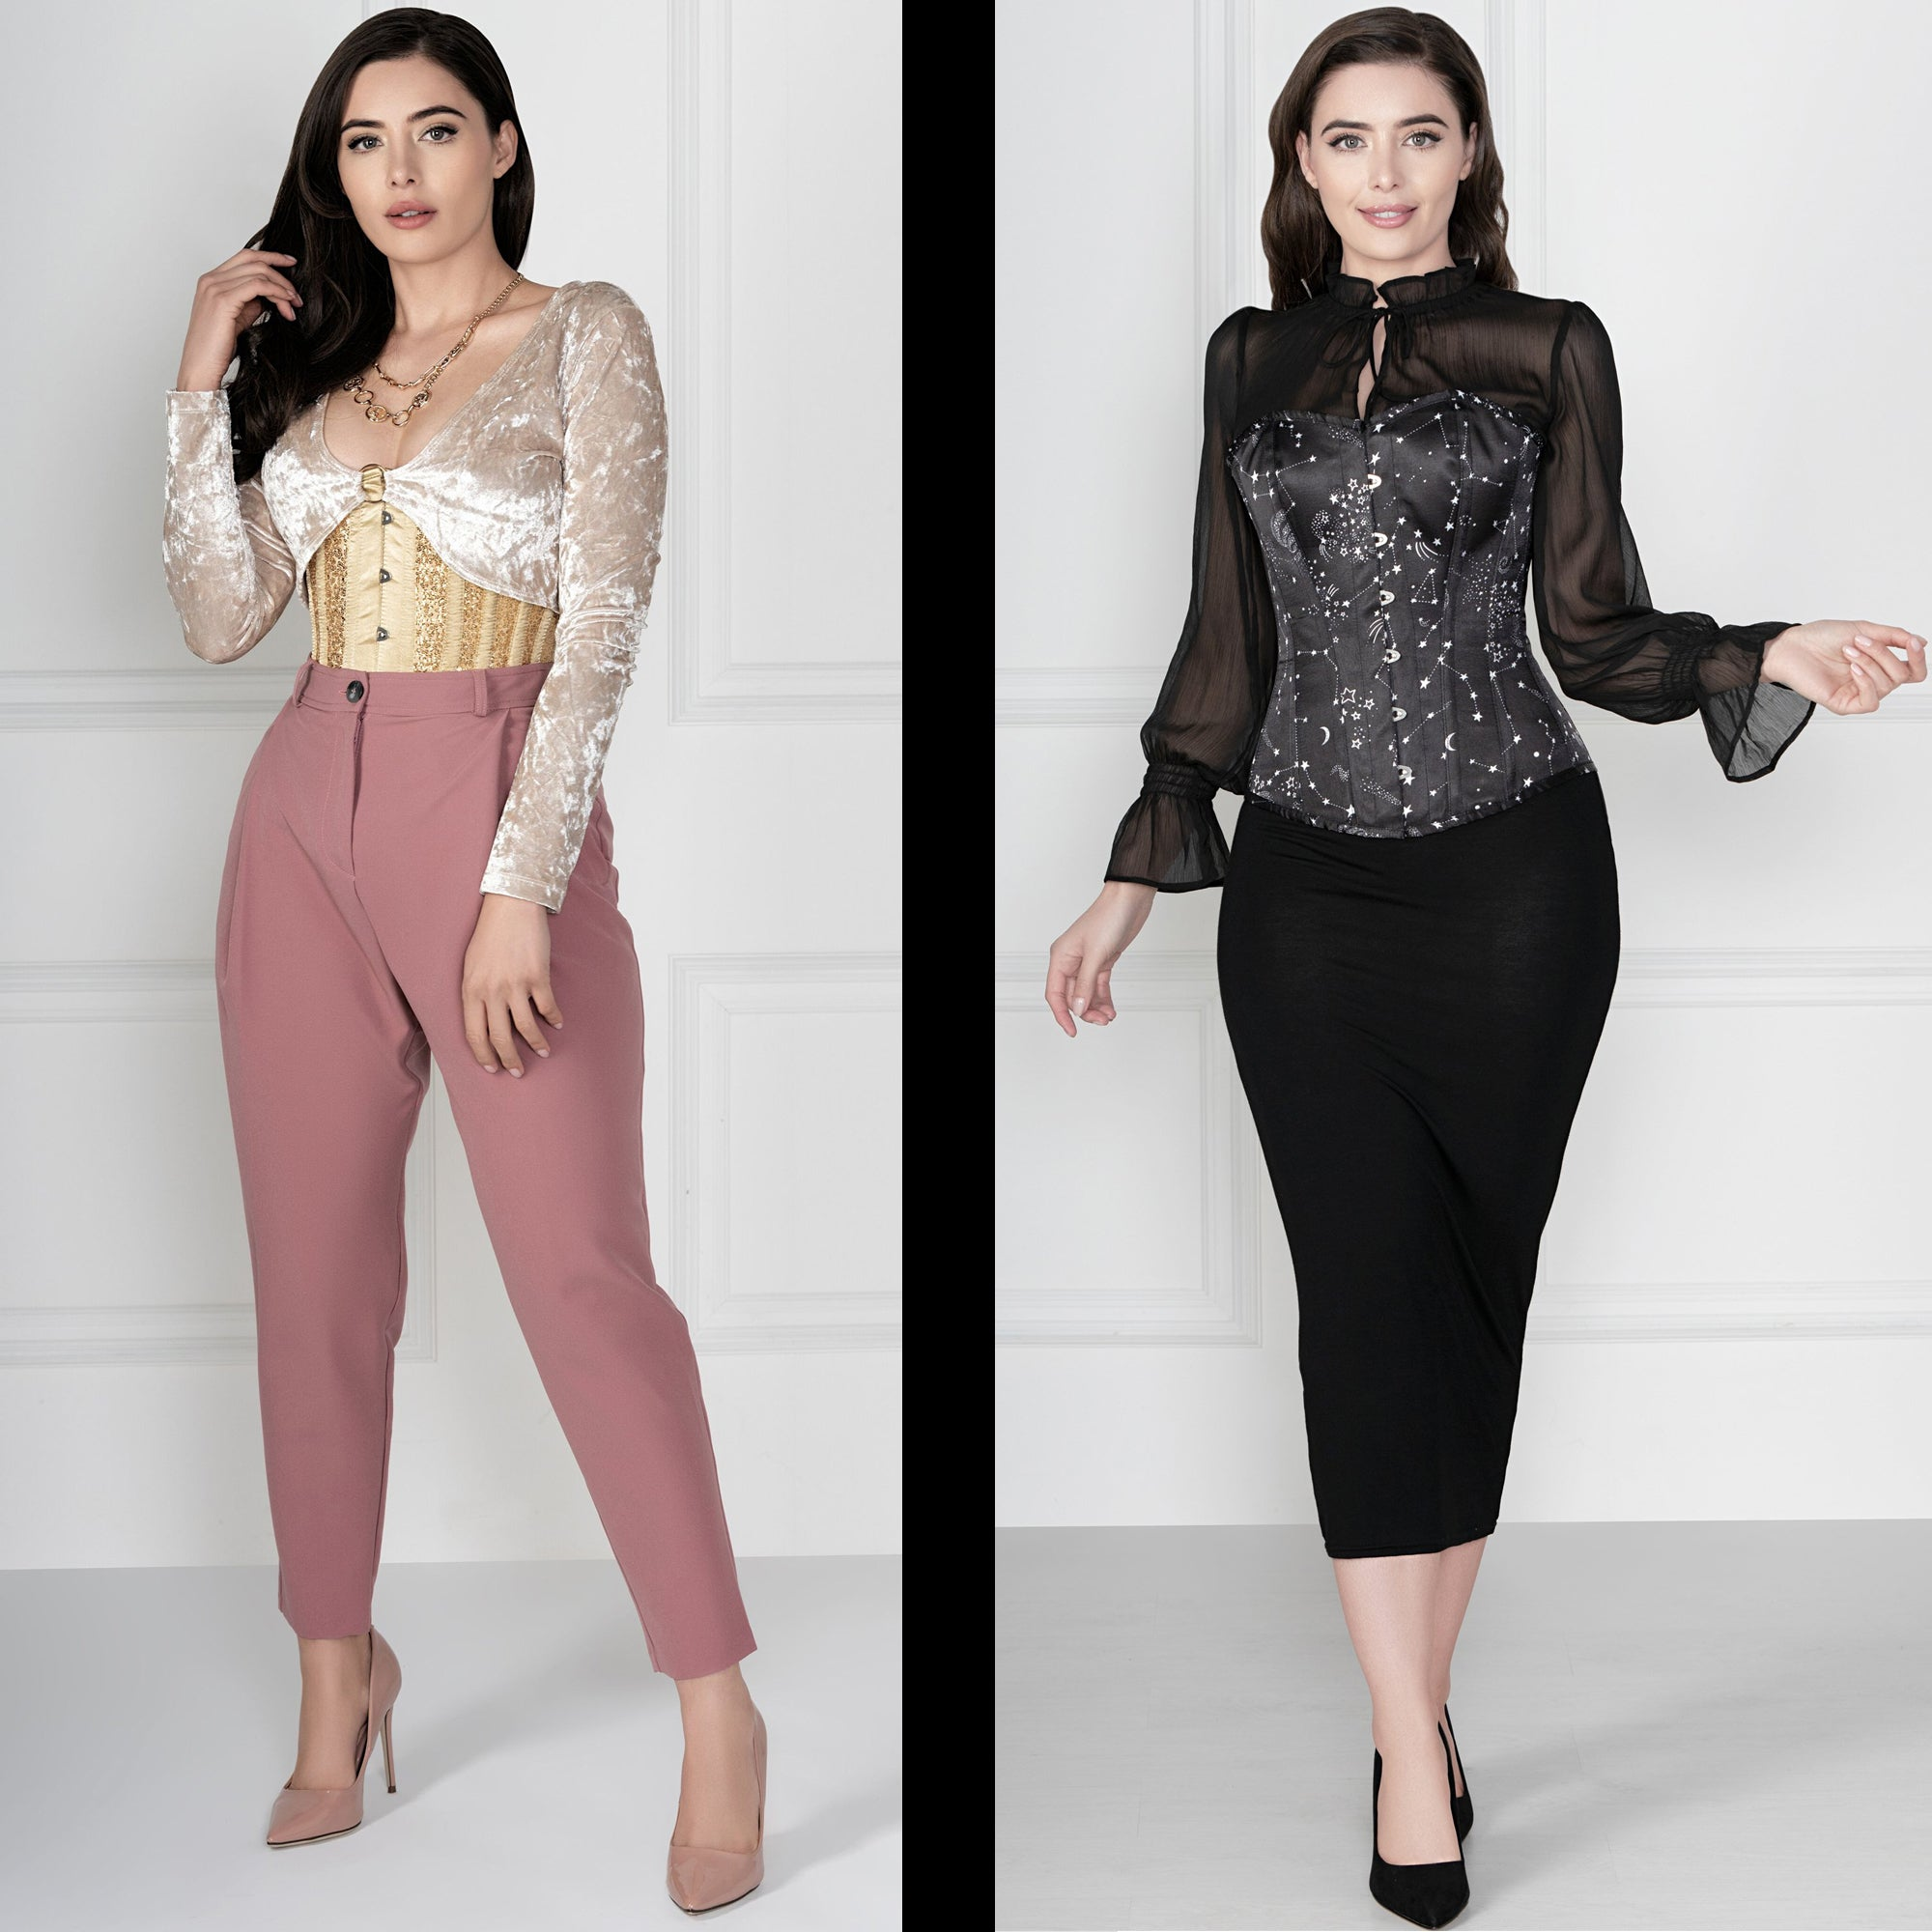 The Full Coverage Corset Style Guide